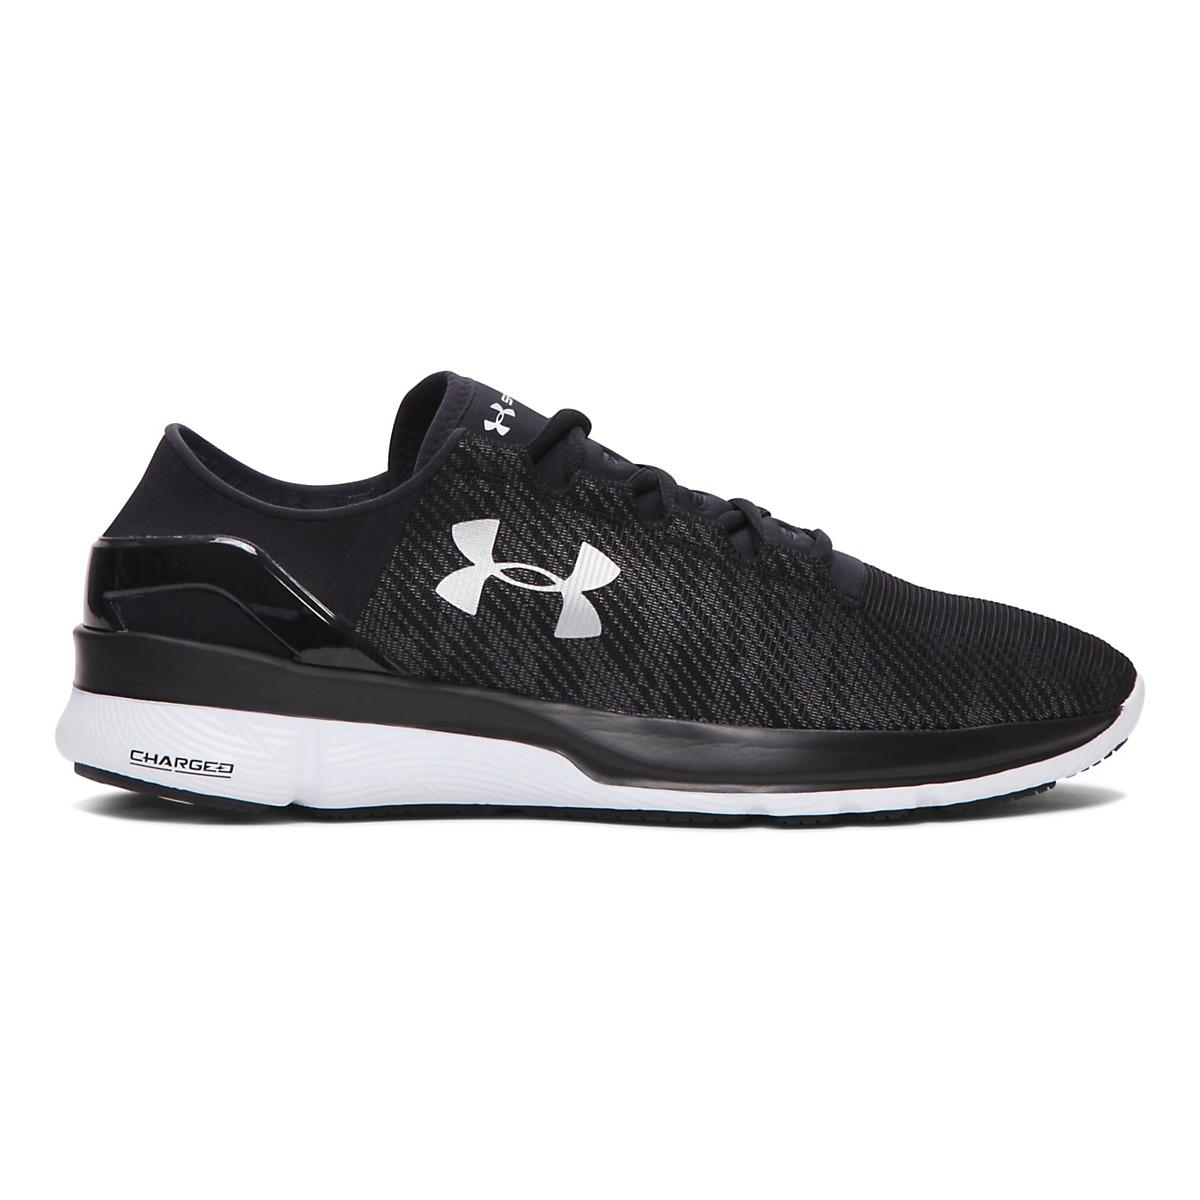 mens under armour speedform apollo 2 rf running shoe at road runner sports. Black Bedroom Furniture Sets. Home Design Ideas